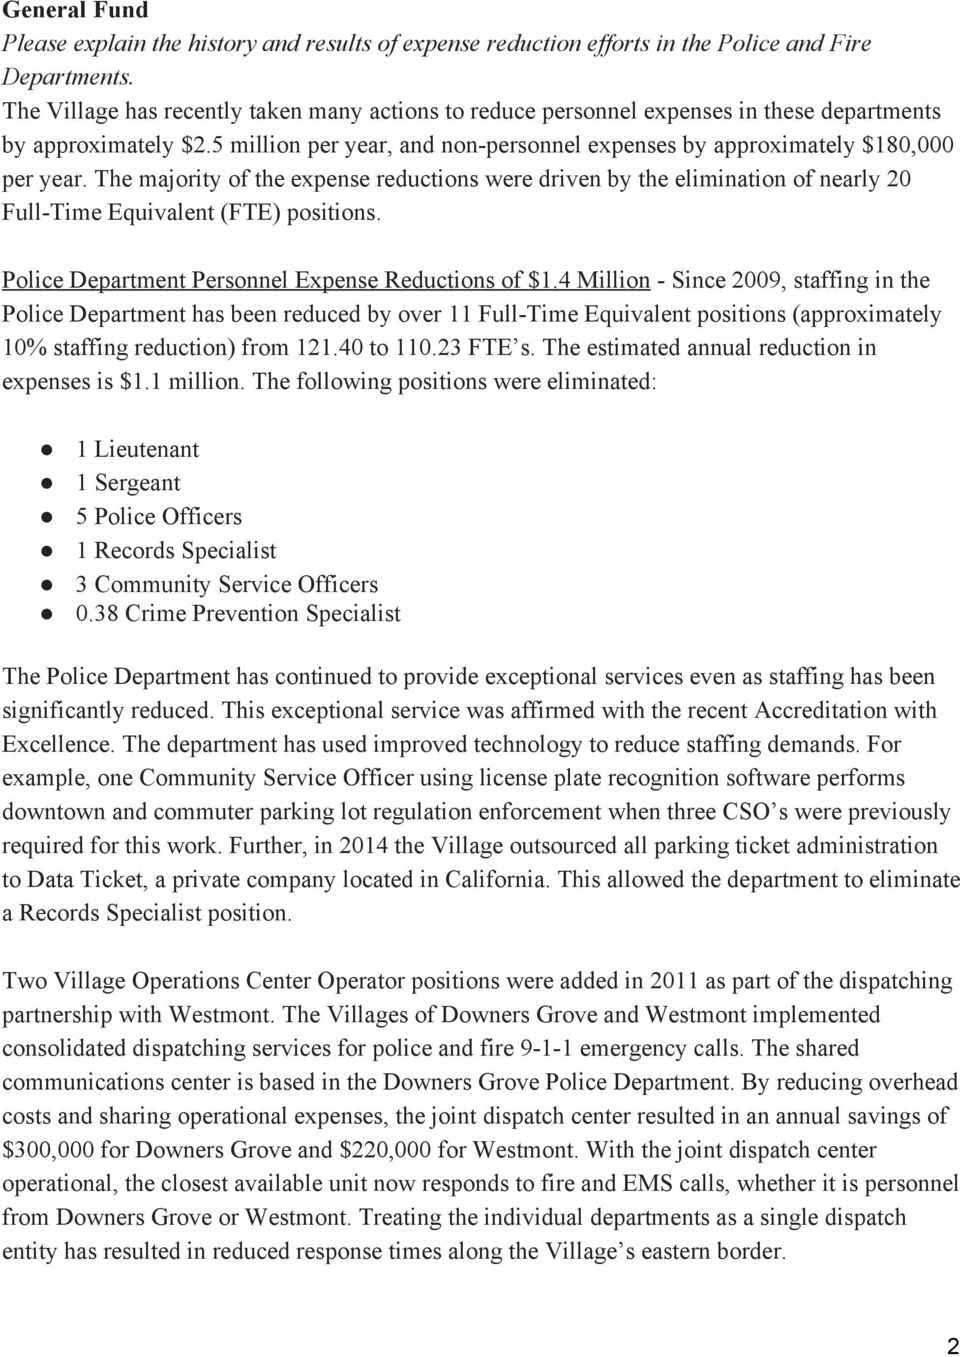 The majority of the expense reductions were driven by the elimination of nearly 20 Full Time Equivalent (FTE) positions. Police Department Personnel Expense Reductions of $1.